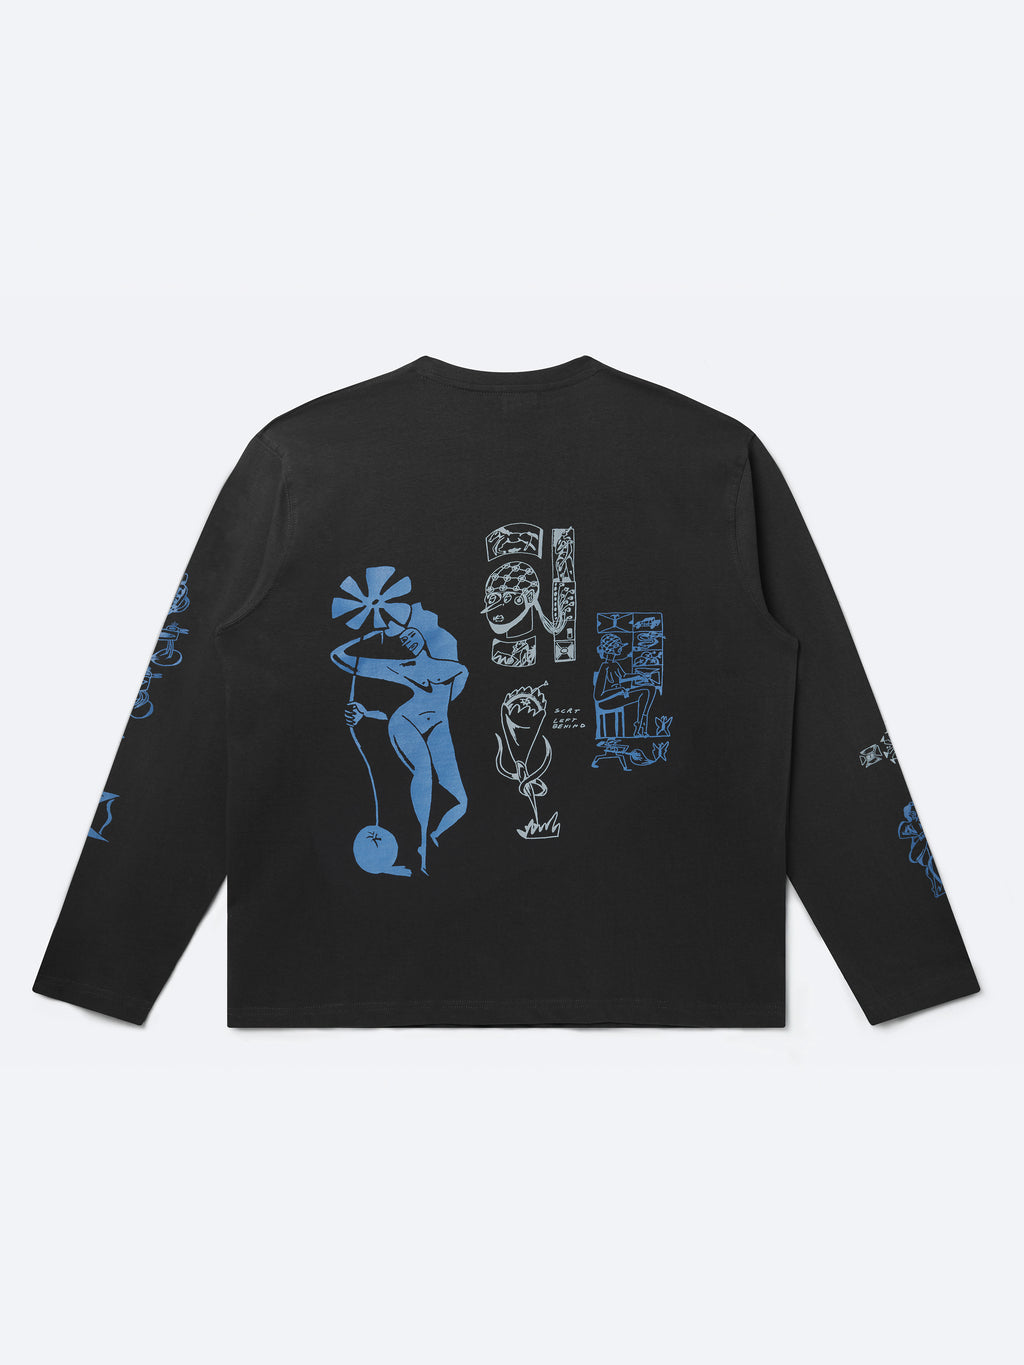 Posthuman Long Sleeve - Black